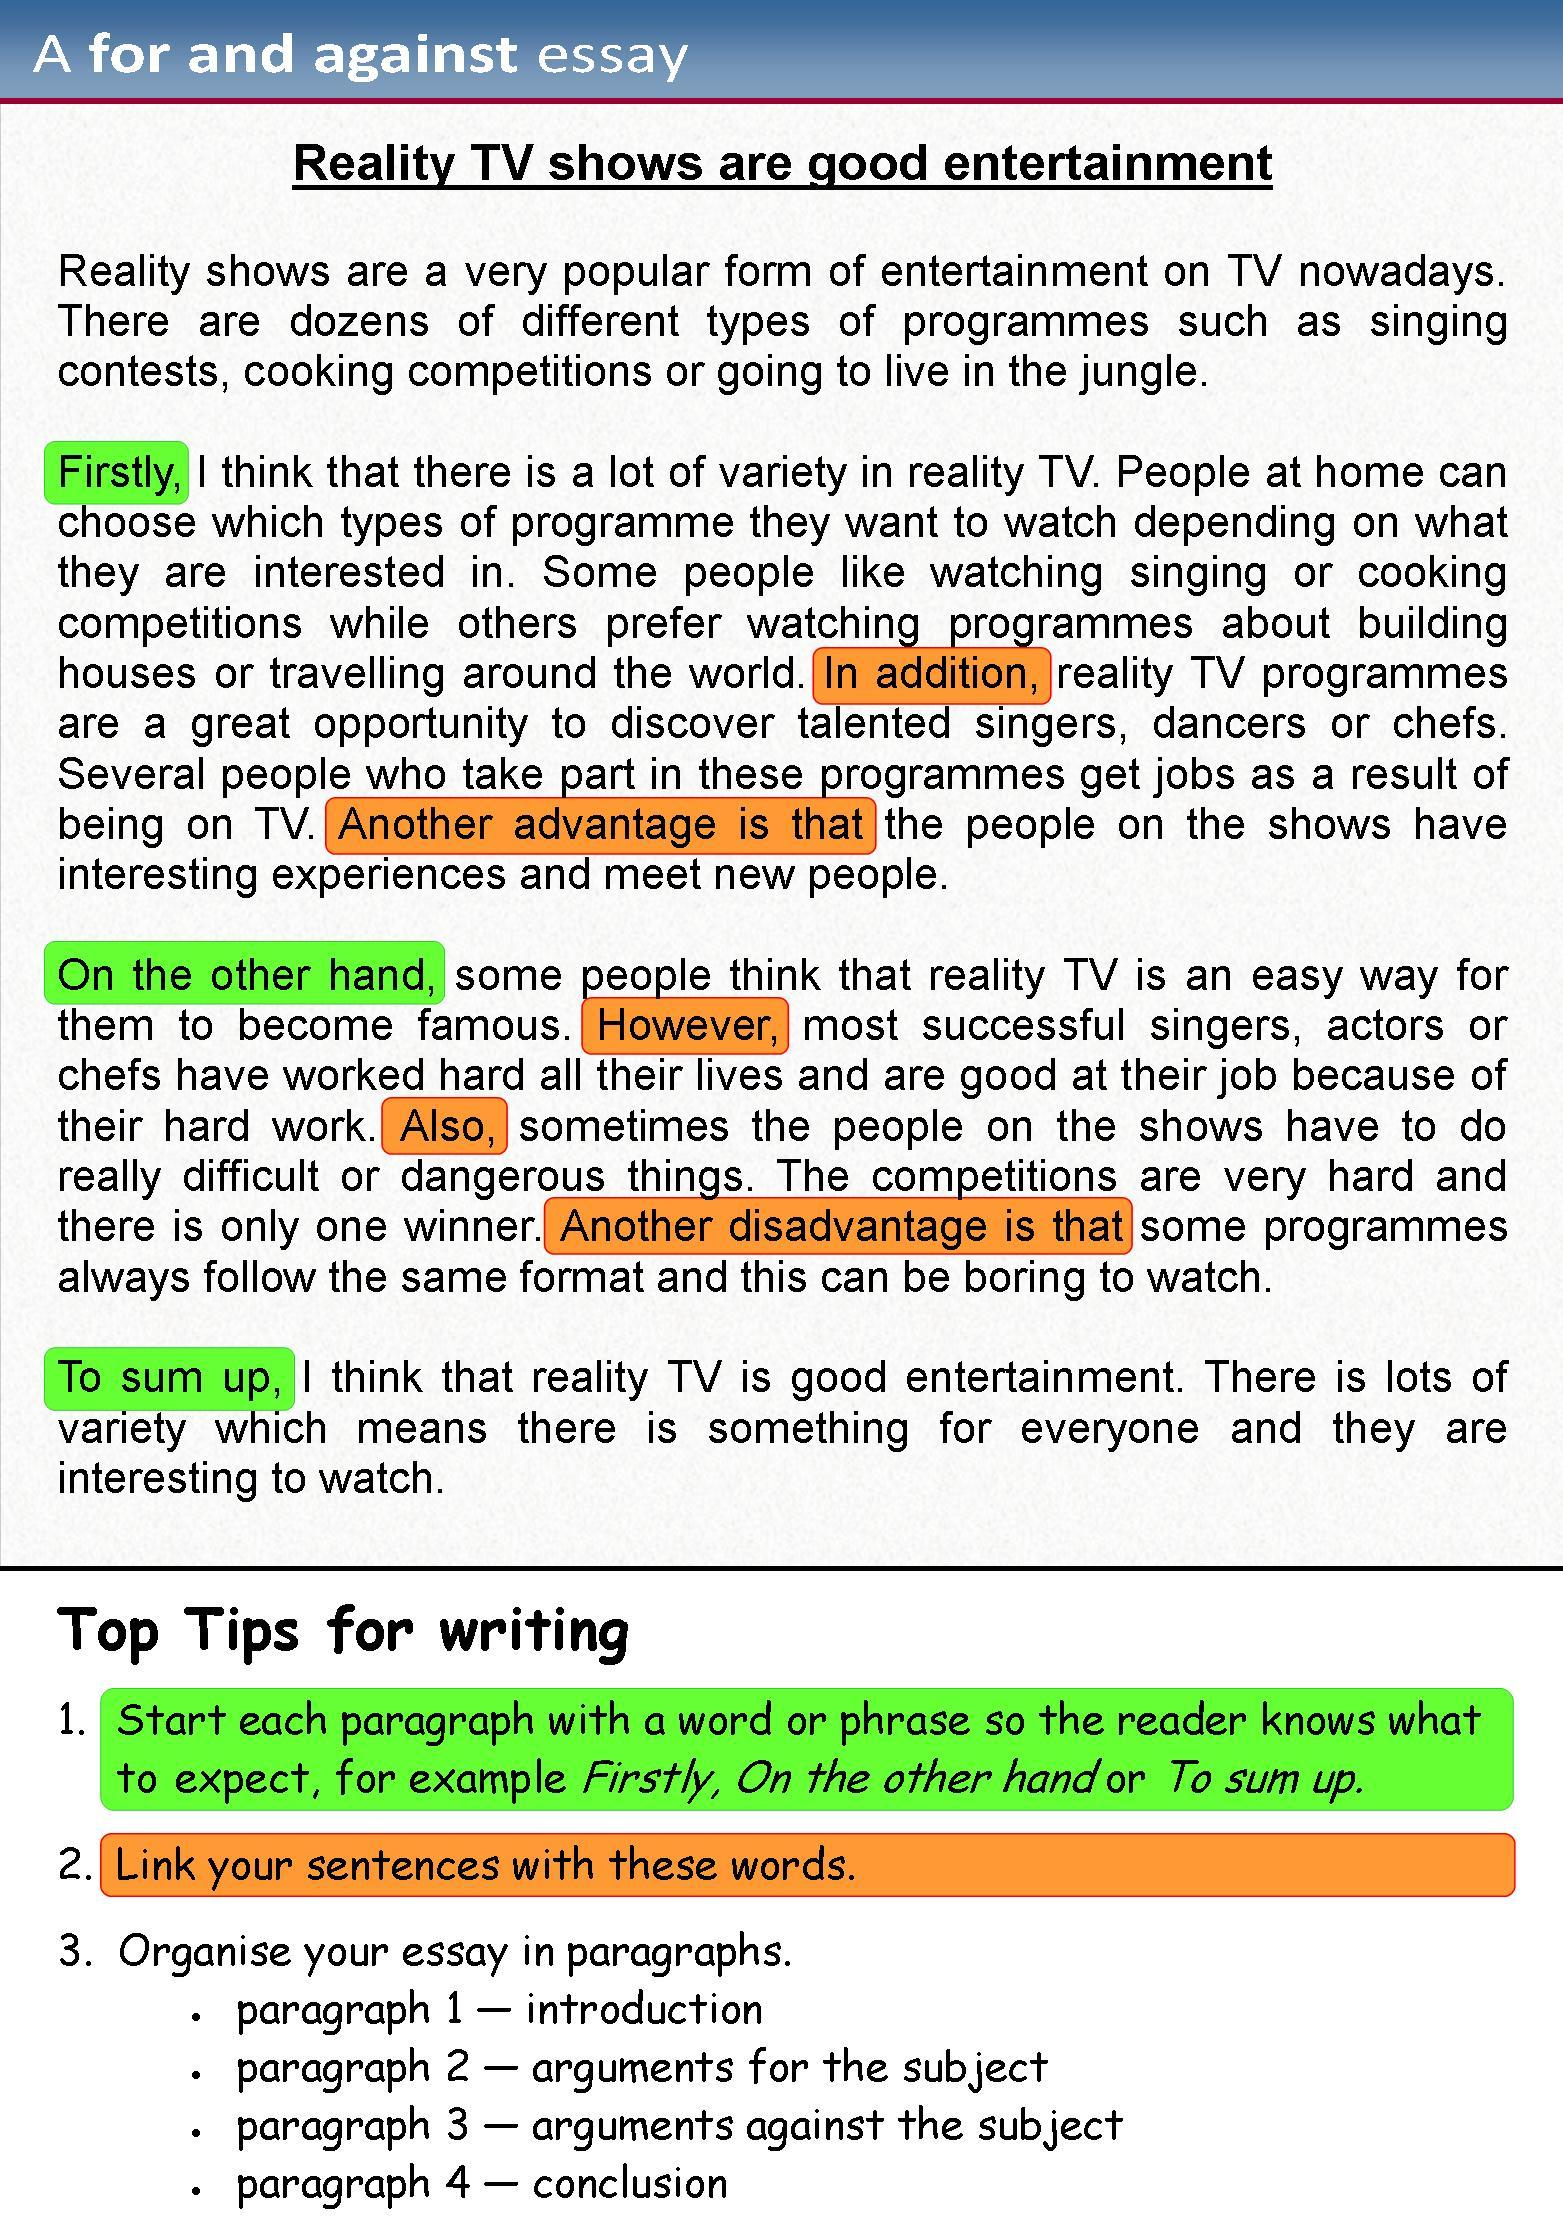 008 Fast Food Culture Essay Example About Customwriting What Is For